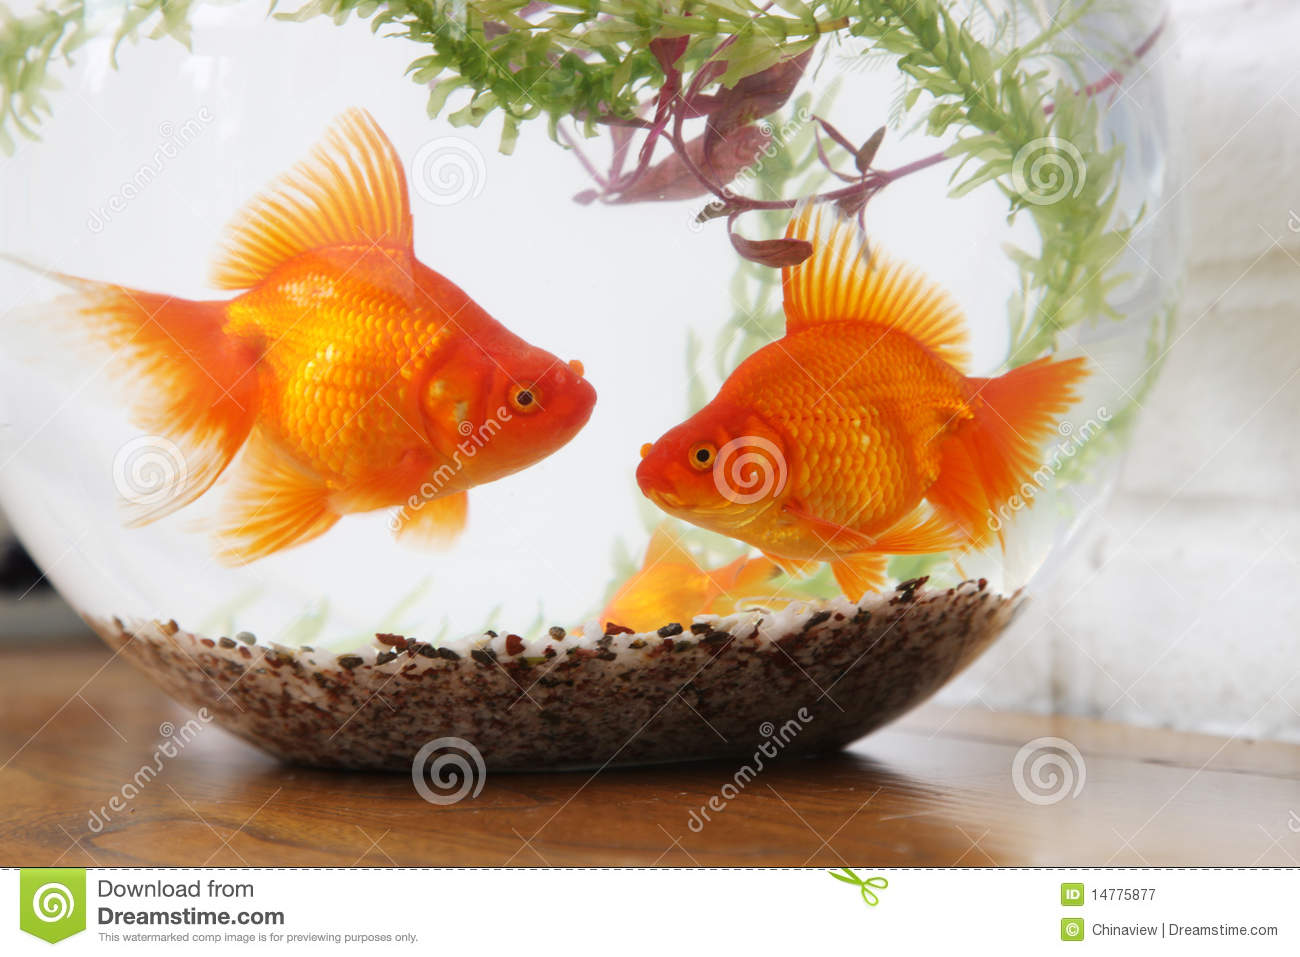 Coral Fish 3d Live Wallpaper Goldfish In Fish Tank Close Up Royalty Free Stock